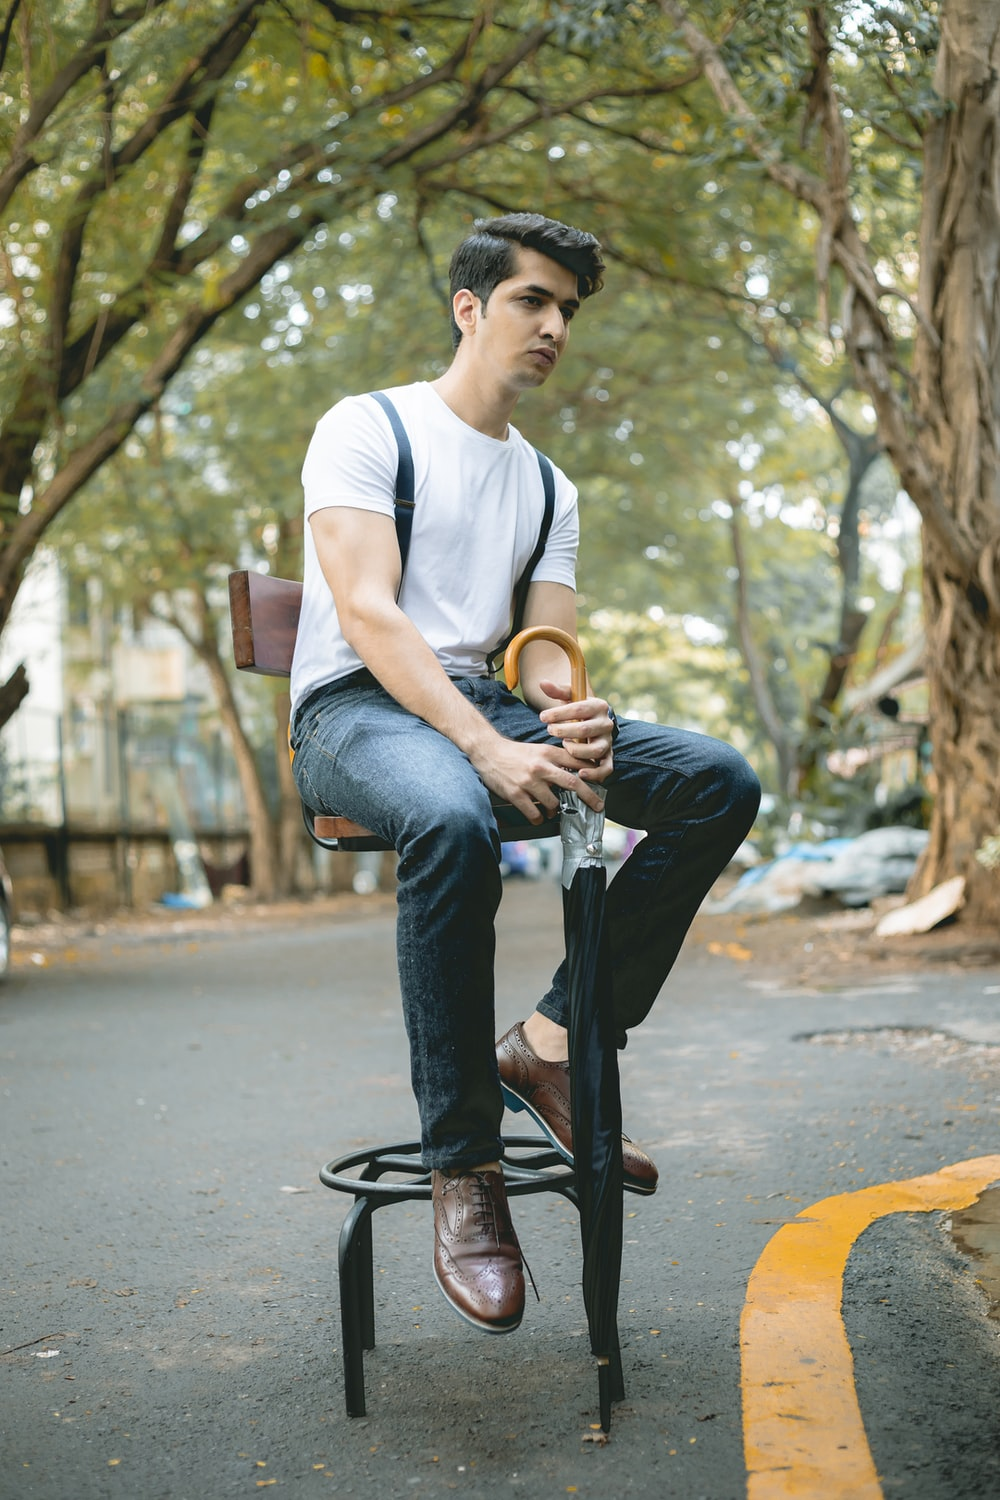 man in white crew-neck T-shirt and blue denim jeans sitting on stool holding black umbrella